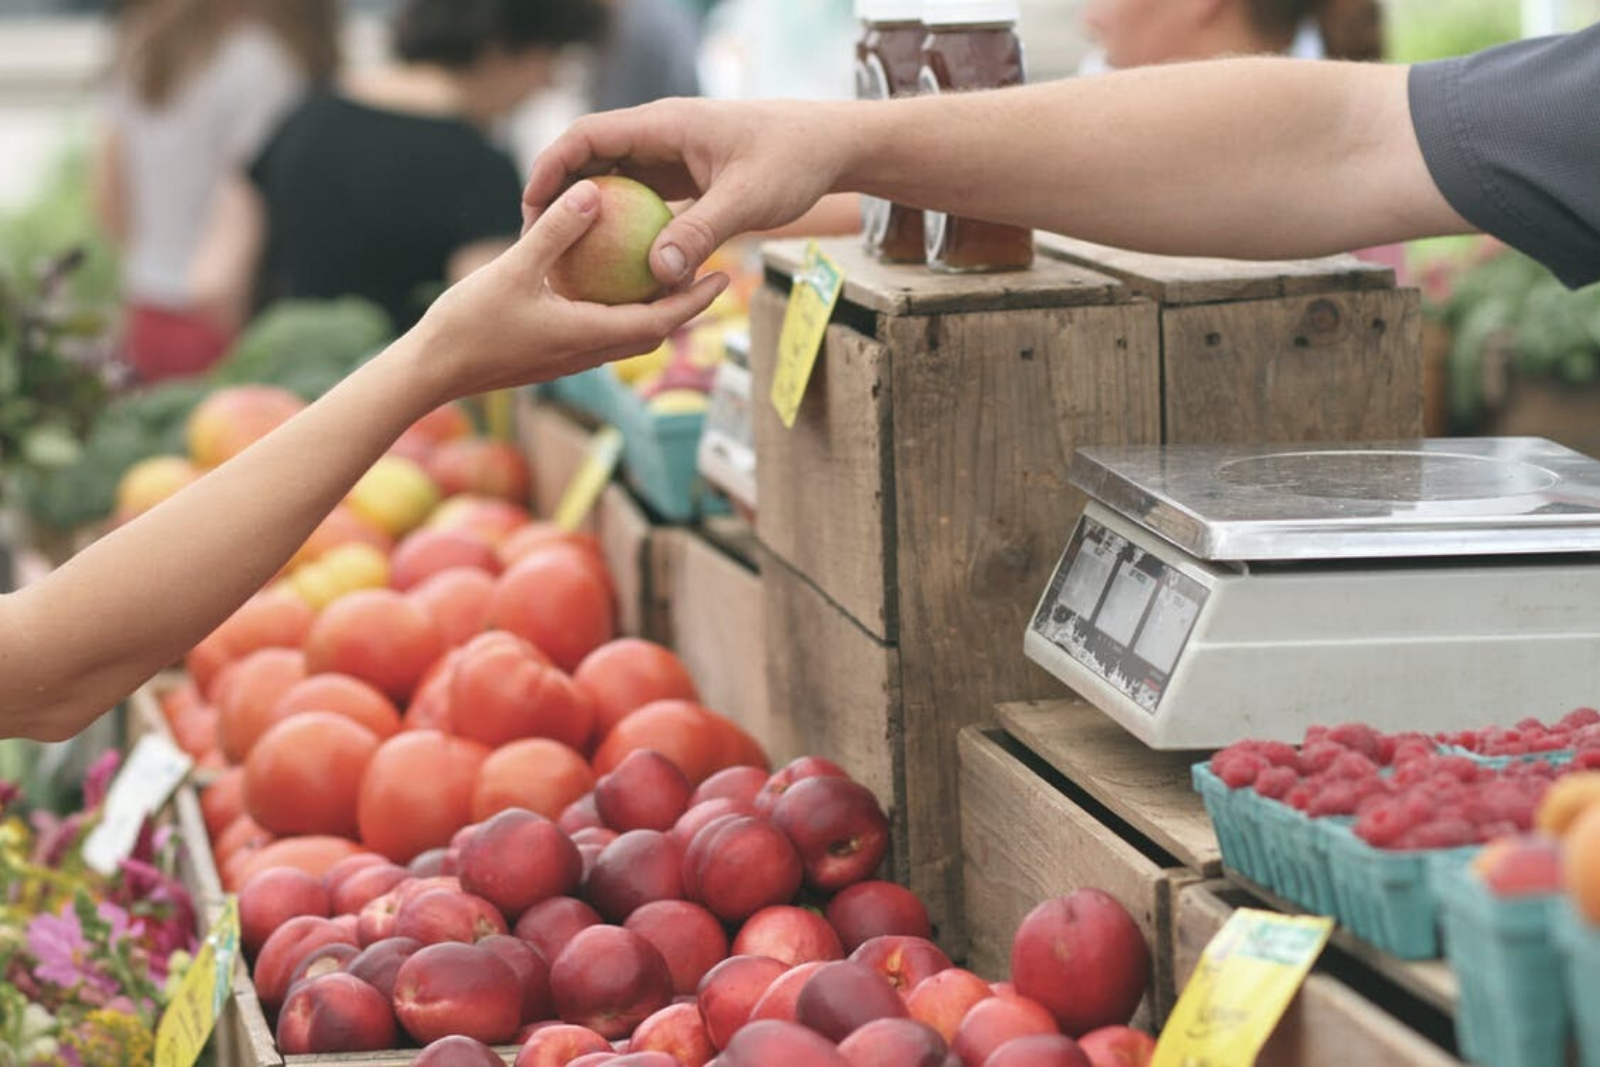 Buying Apples | Creating Your Vegan Grocery List And Meal Plan